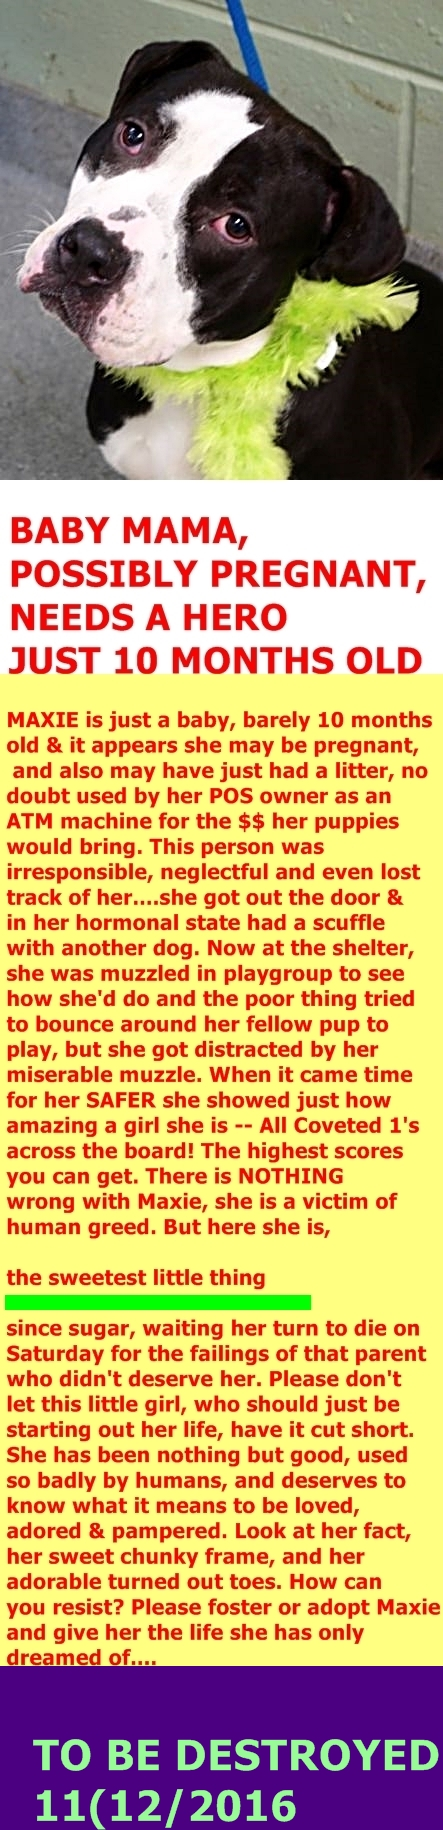 SAFE 11-12-2016 by Second Chance Rescue --- Manhattan Center MAXIE – A1094644  ***POSSIBLY PREGNANT***DOH HOLD – B***  FEMALE, BLACK / WHITE, PIT BULL MIX, 9 mos OWNER SUR – ONHOLDHERE, HOLD FOR DOH-B Reason STRAY Intake condition PREGNANT Intake Date 10/24/2016  http://nycdogs.urgentpodr.org/maxie-a1094644/